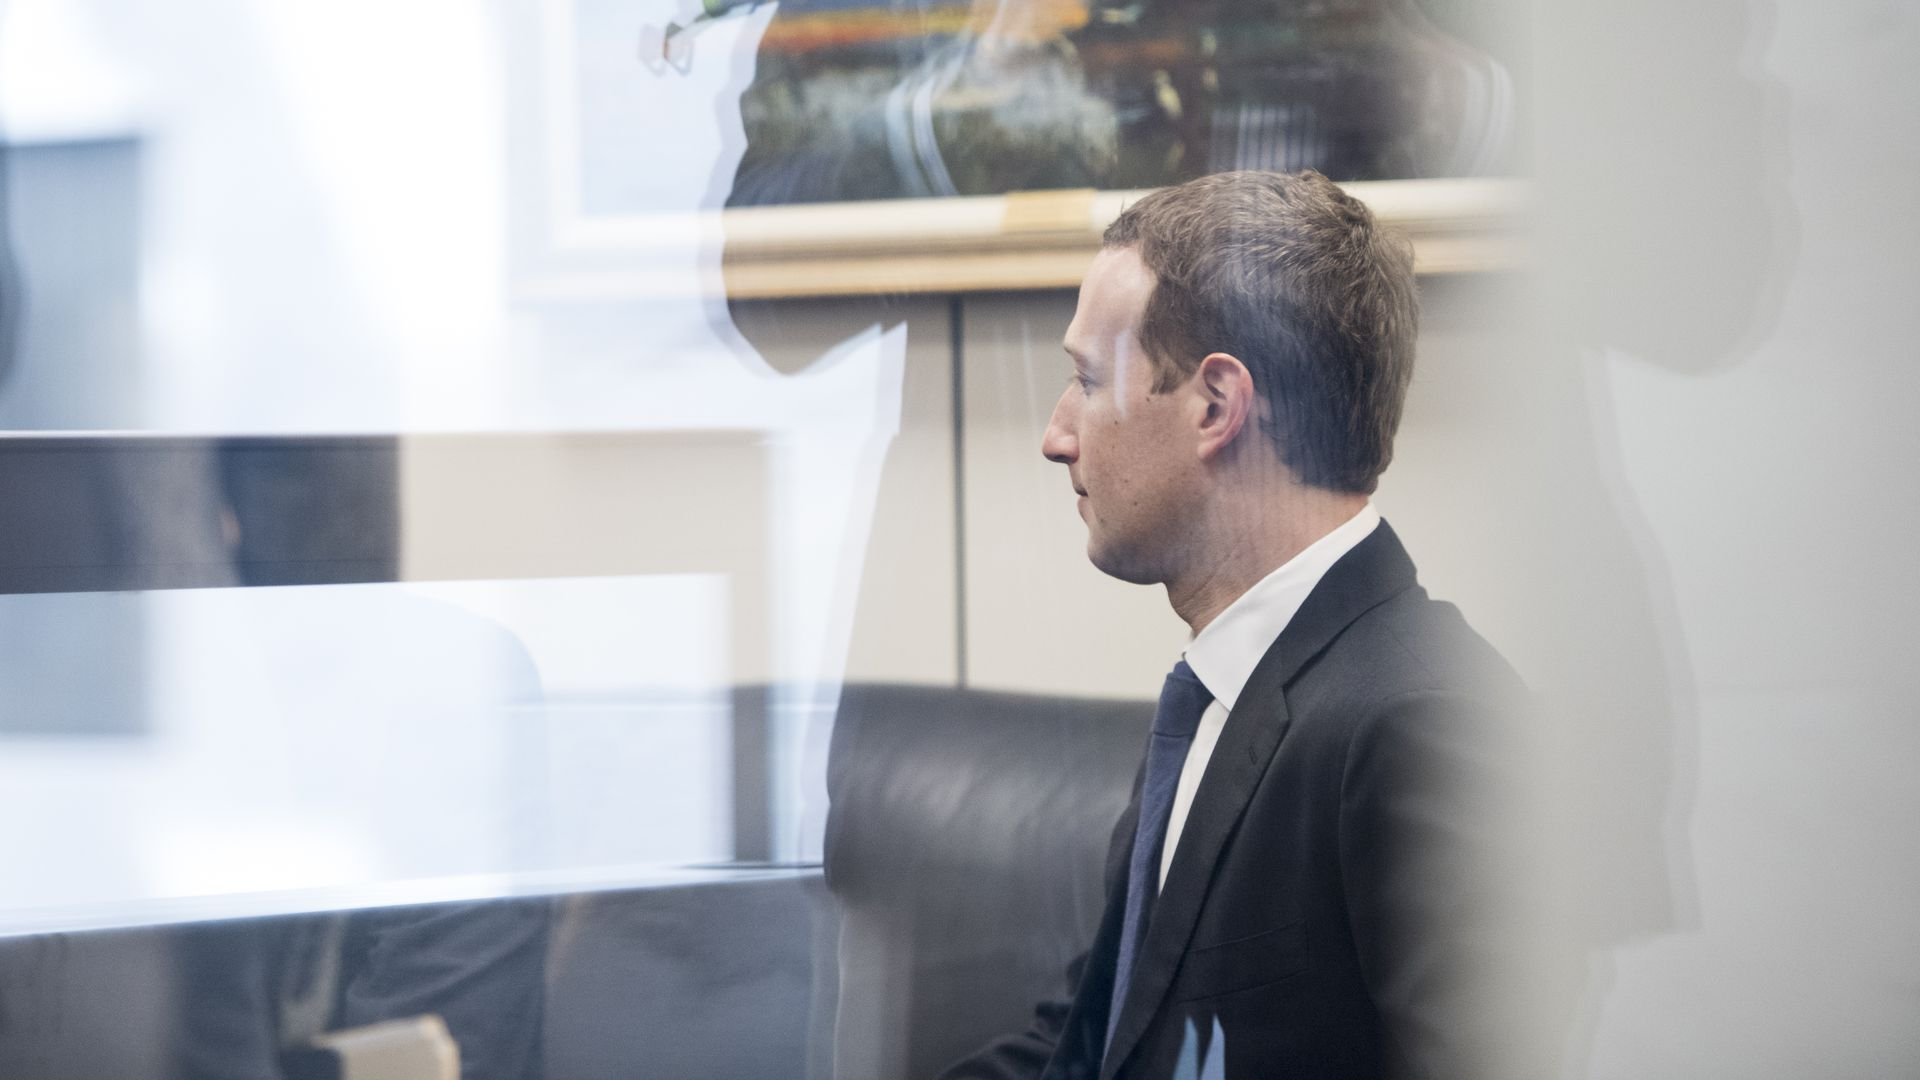 Facebook CEO Mark Zuckerberg seated, looking away, photographed through a window